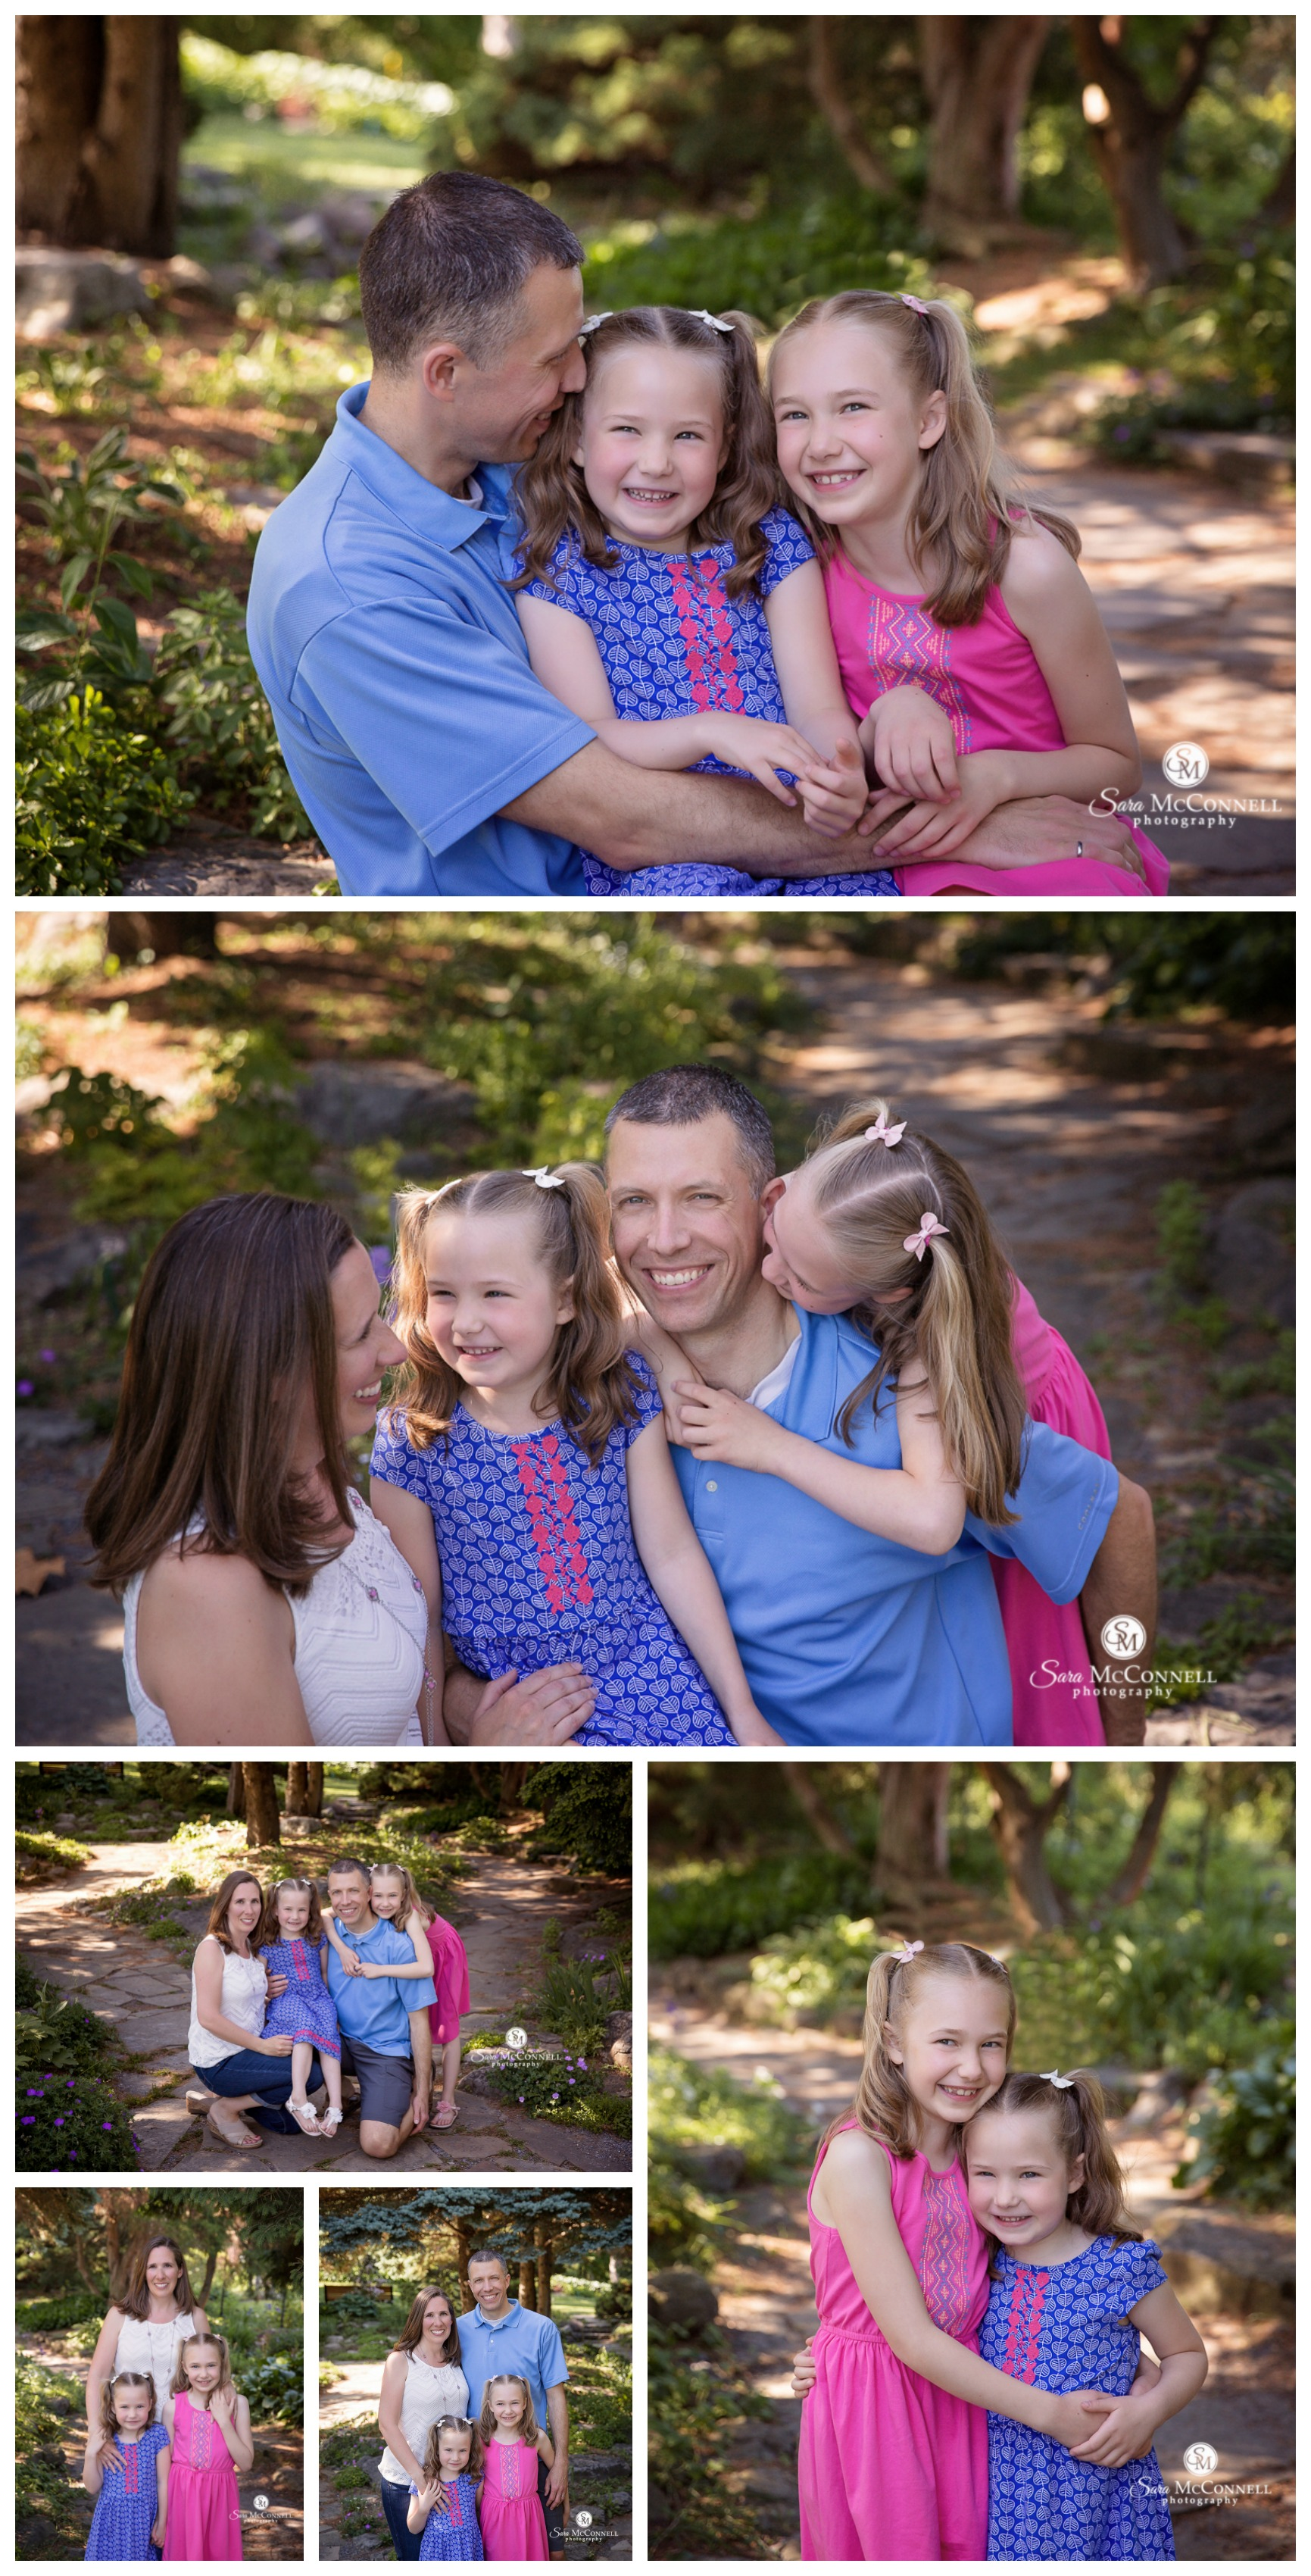 Ottawa Family Photos - Spring photos with parents and kids by Sara McConnell Photography